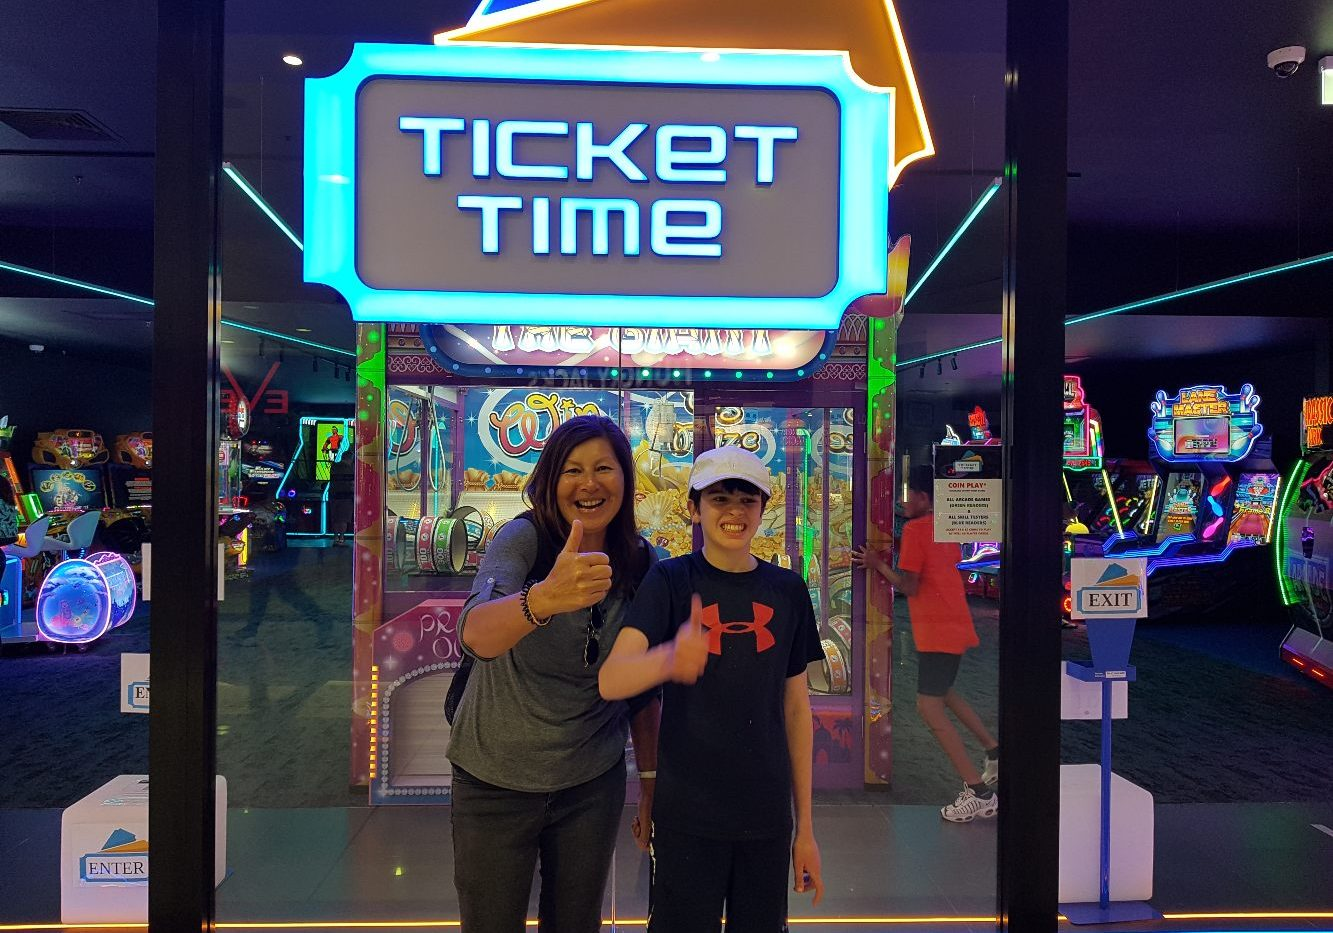 support services and boy having fun and exercising at ticket time